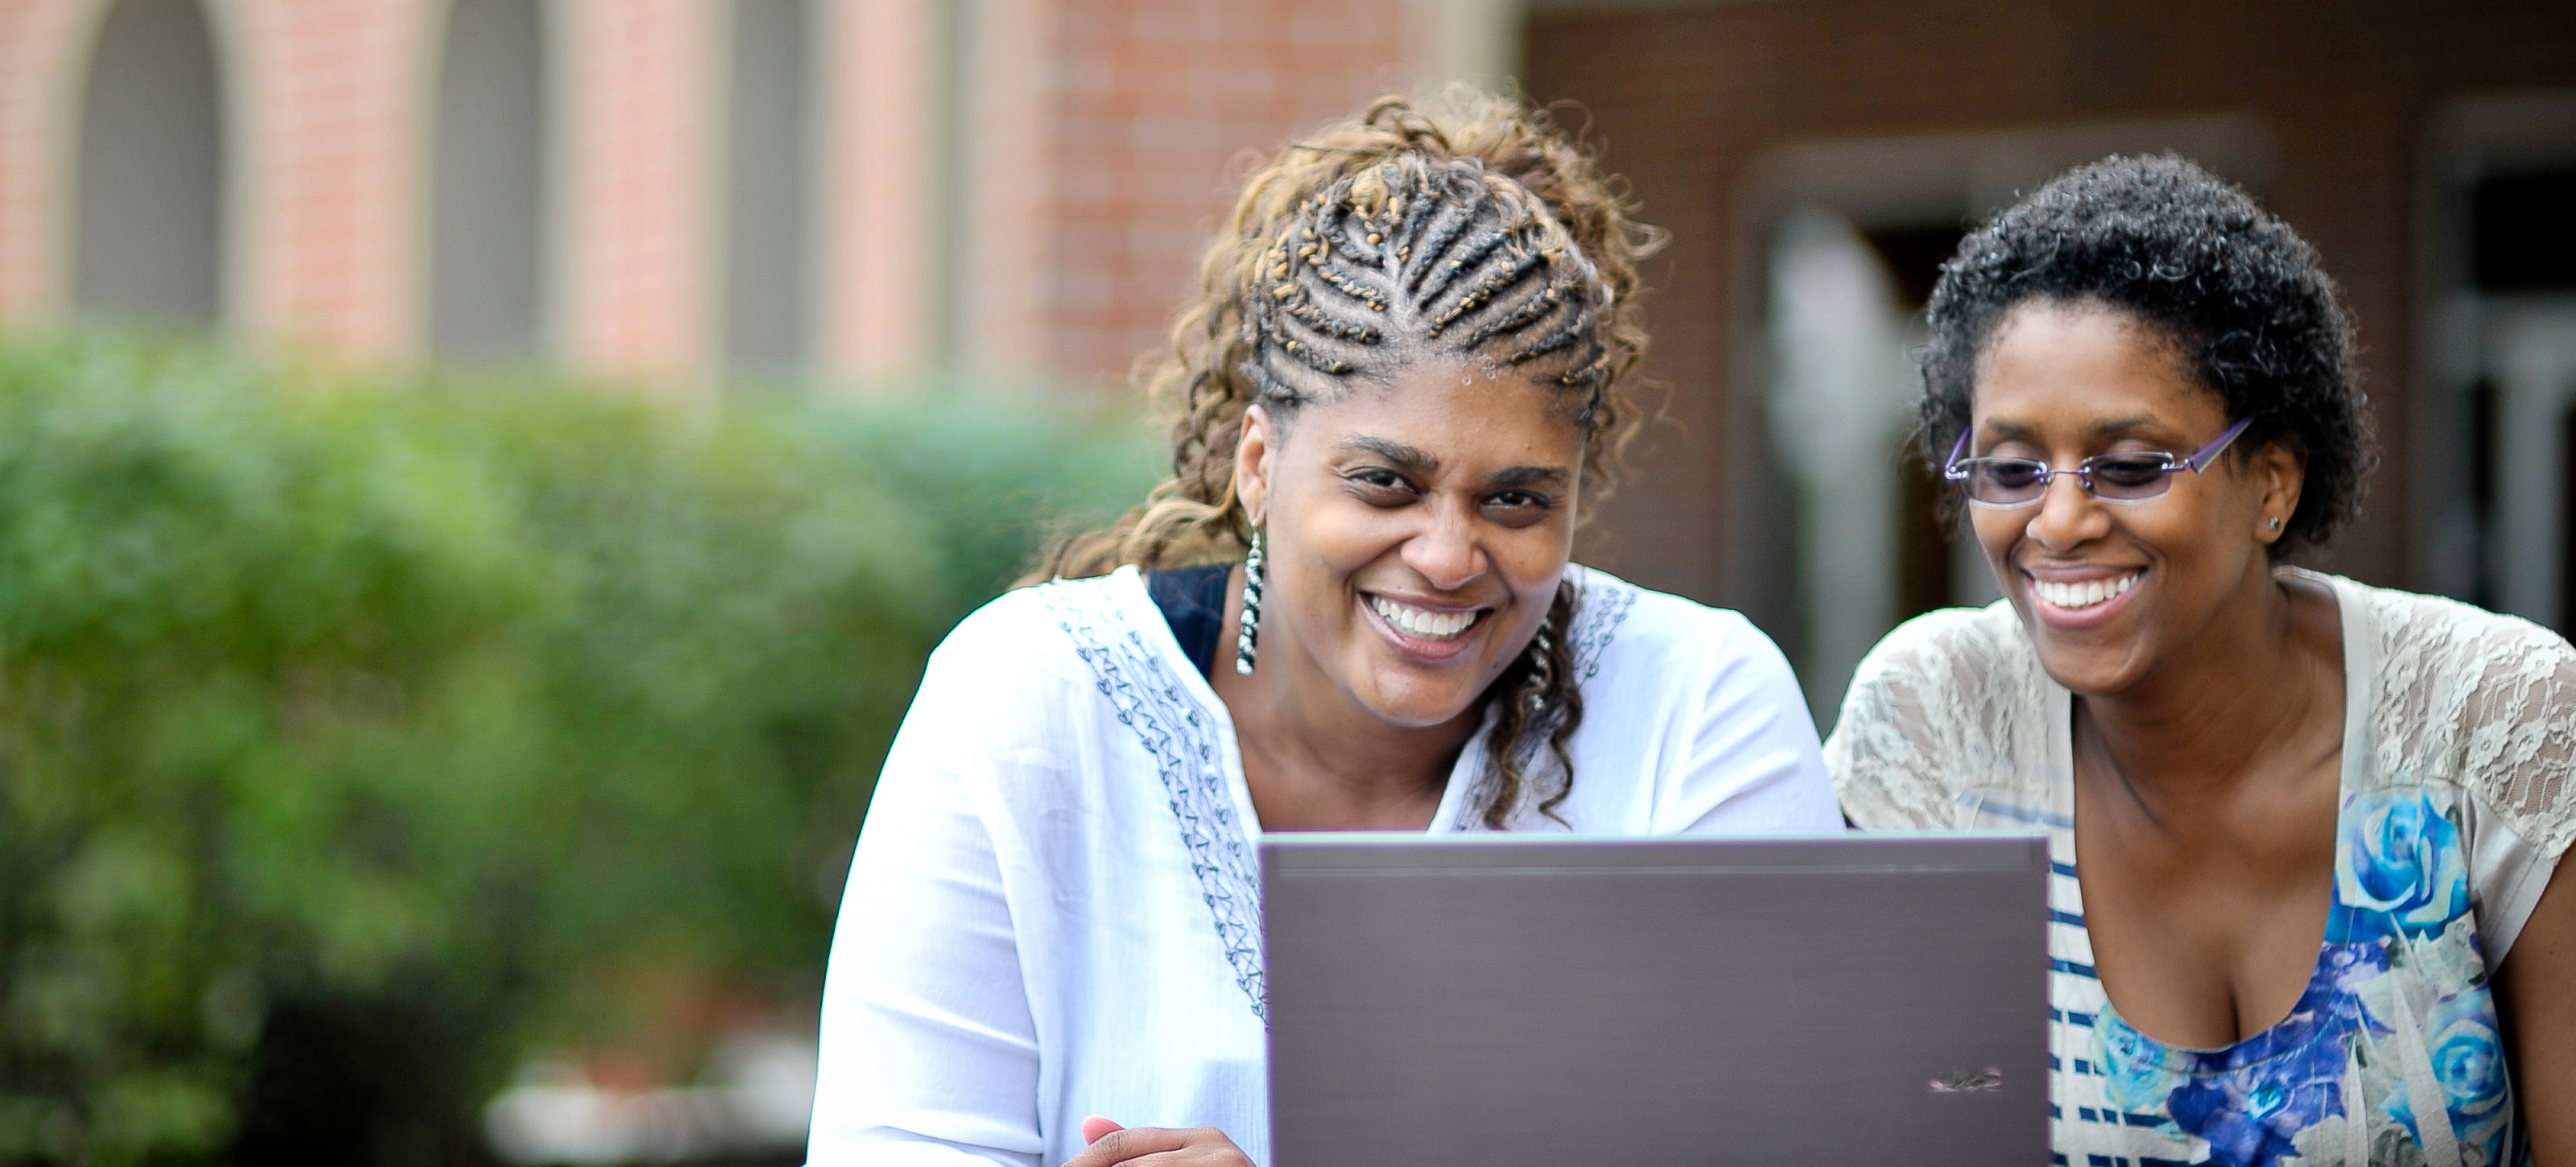 2 smiling women on laptop outside GSLC campus